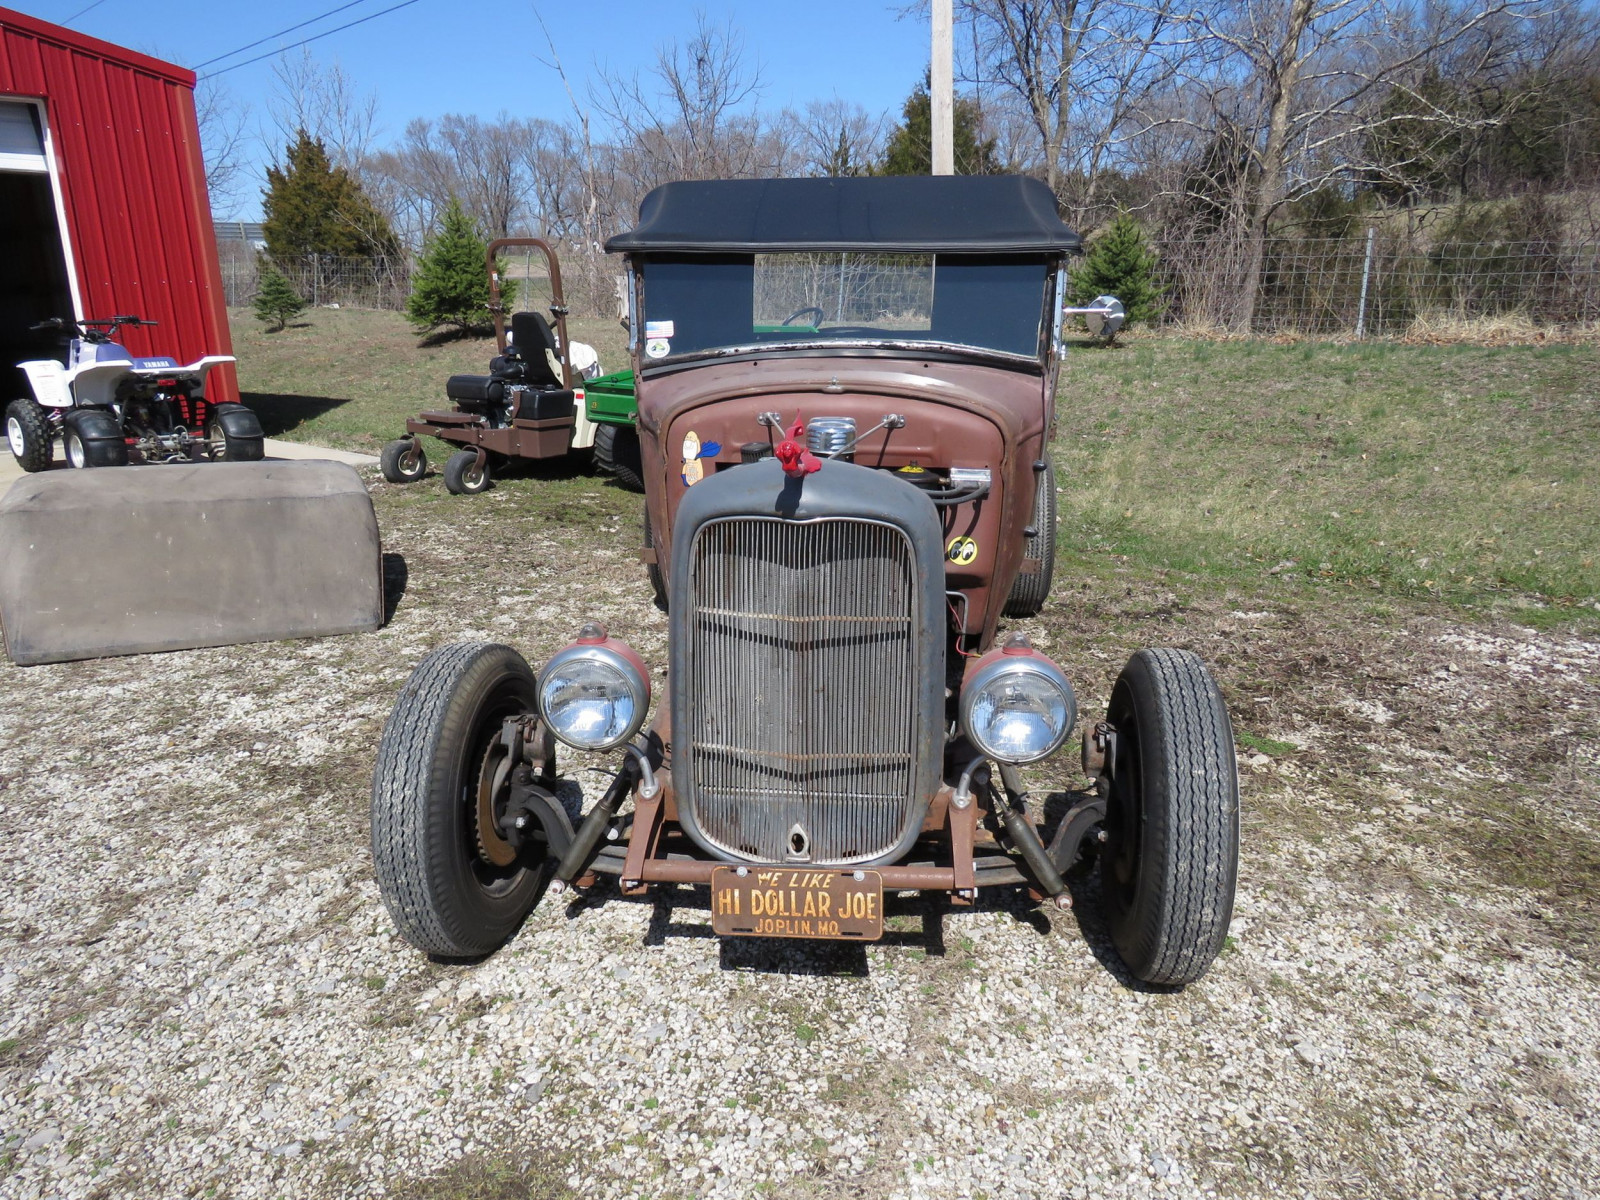 1930 Ford Model A Roadster Hot Rod - Image 2